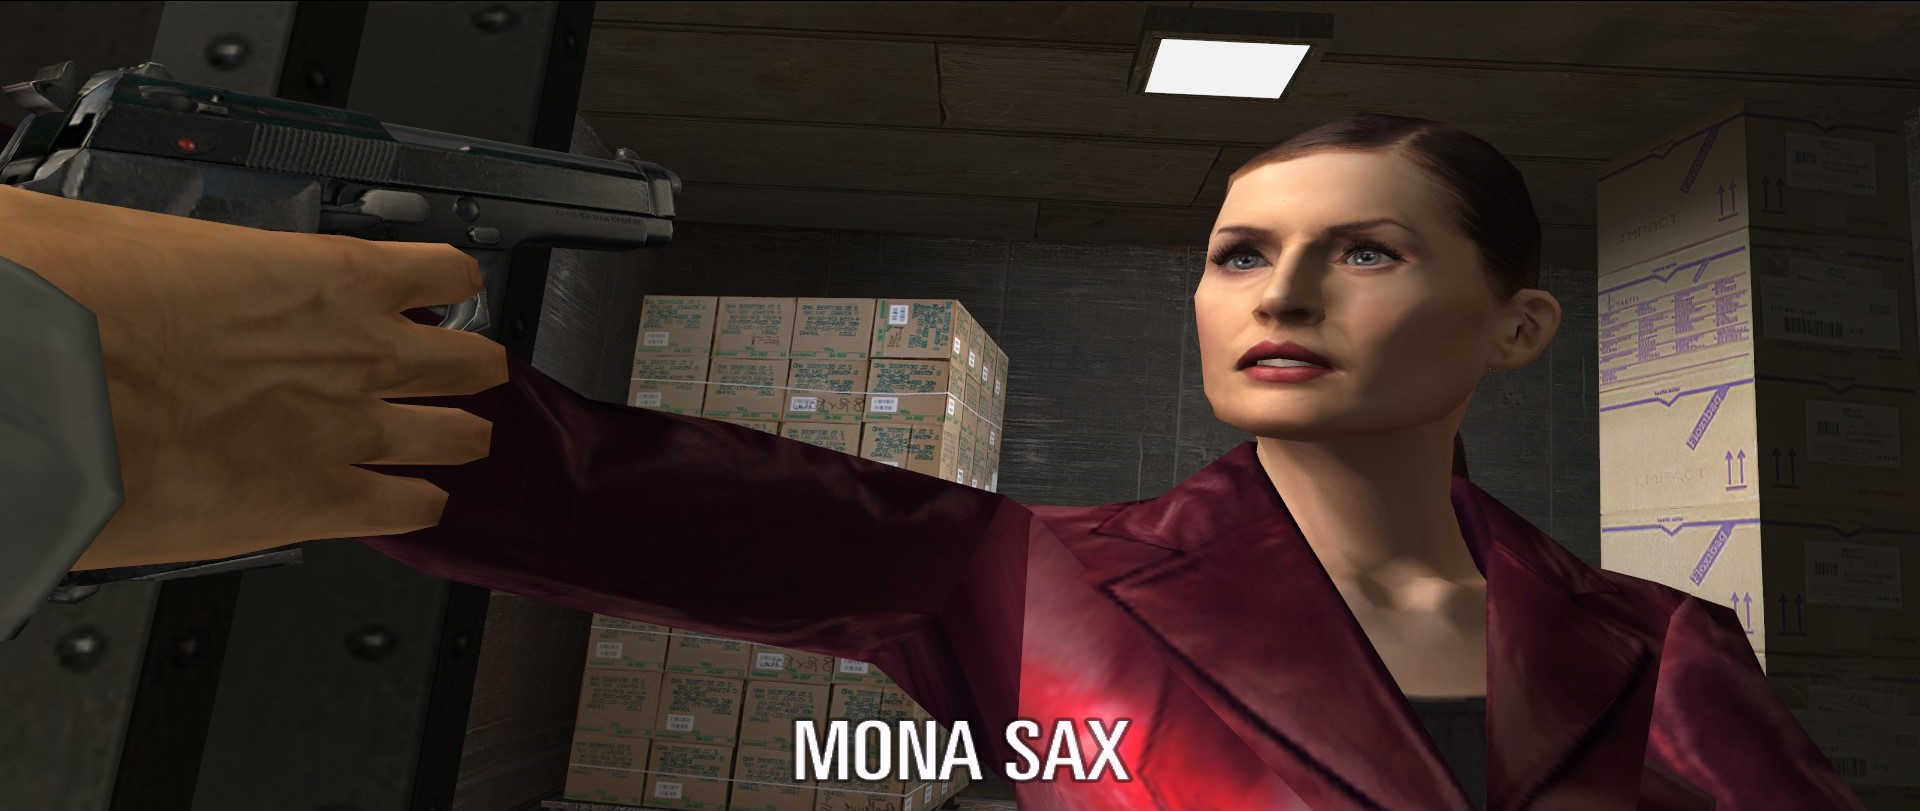 Mona, the character to join Max by his side.